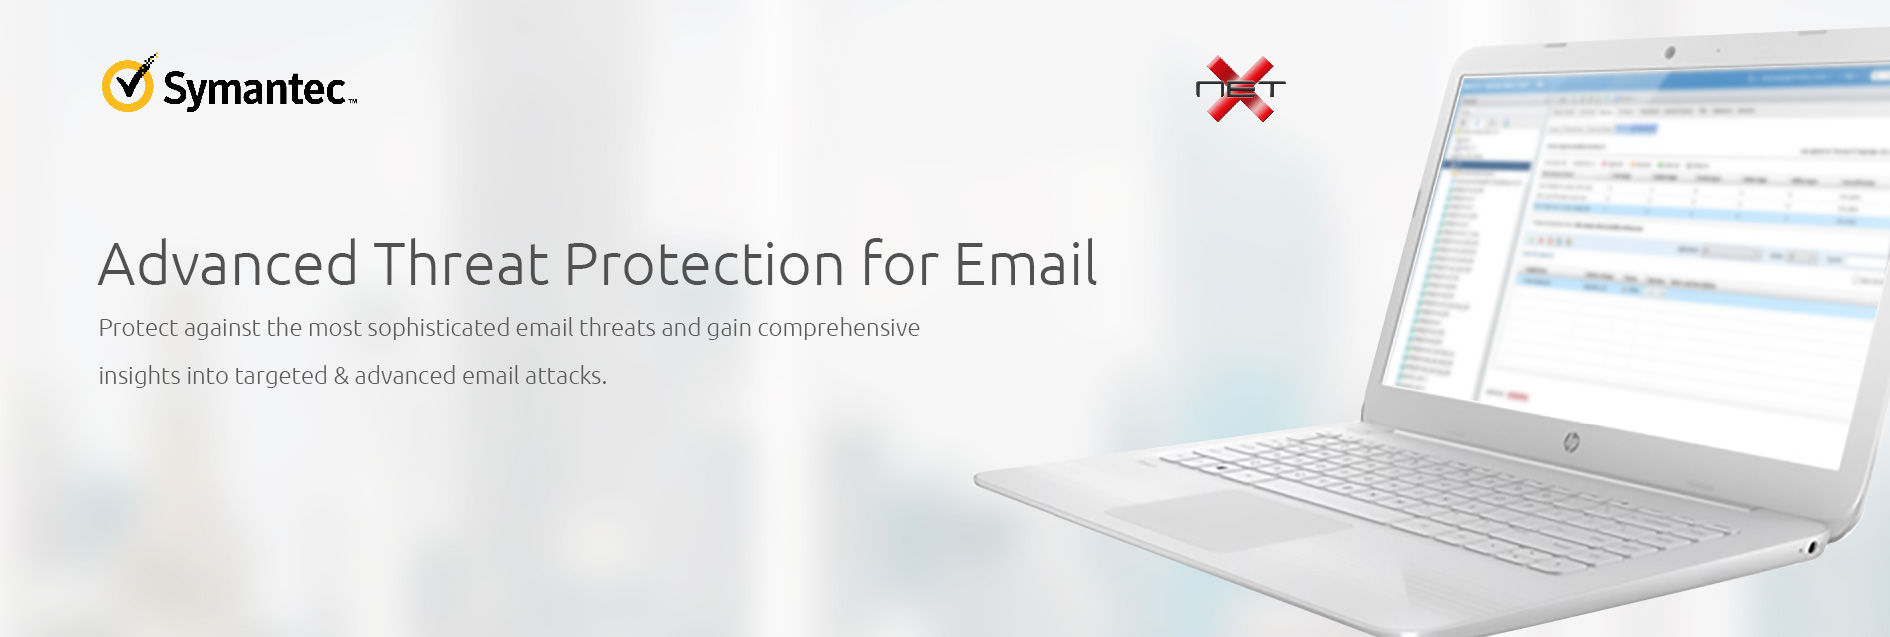 netx-symantec-Advanced-Threat-Protection-for-Email-banner